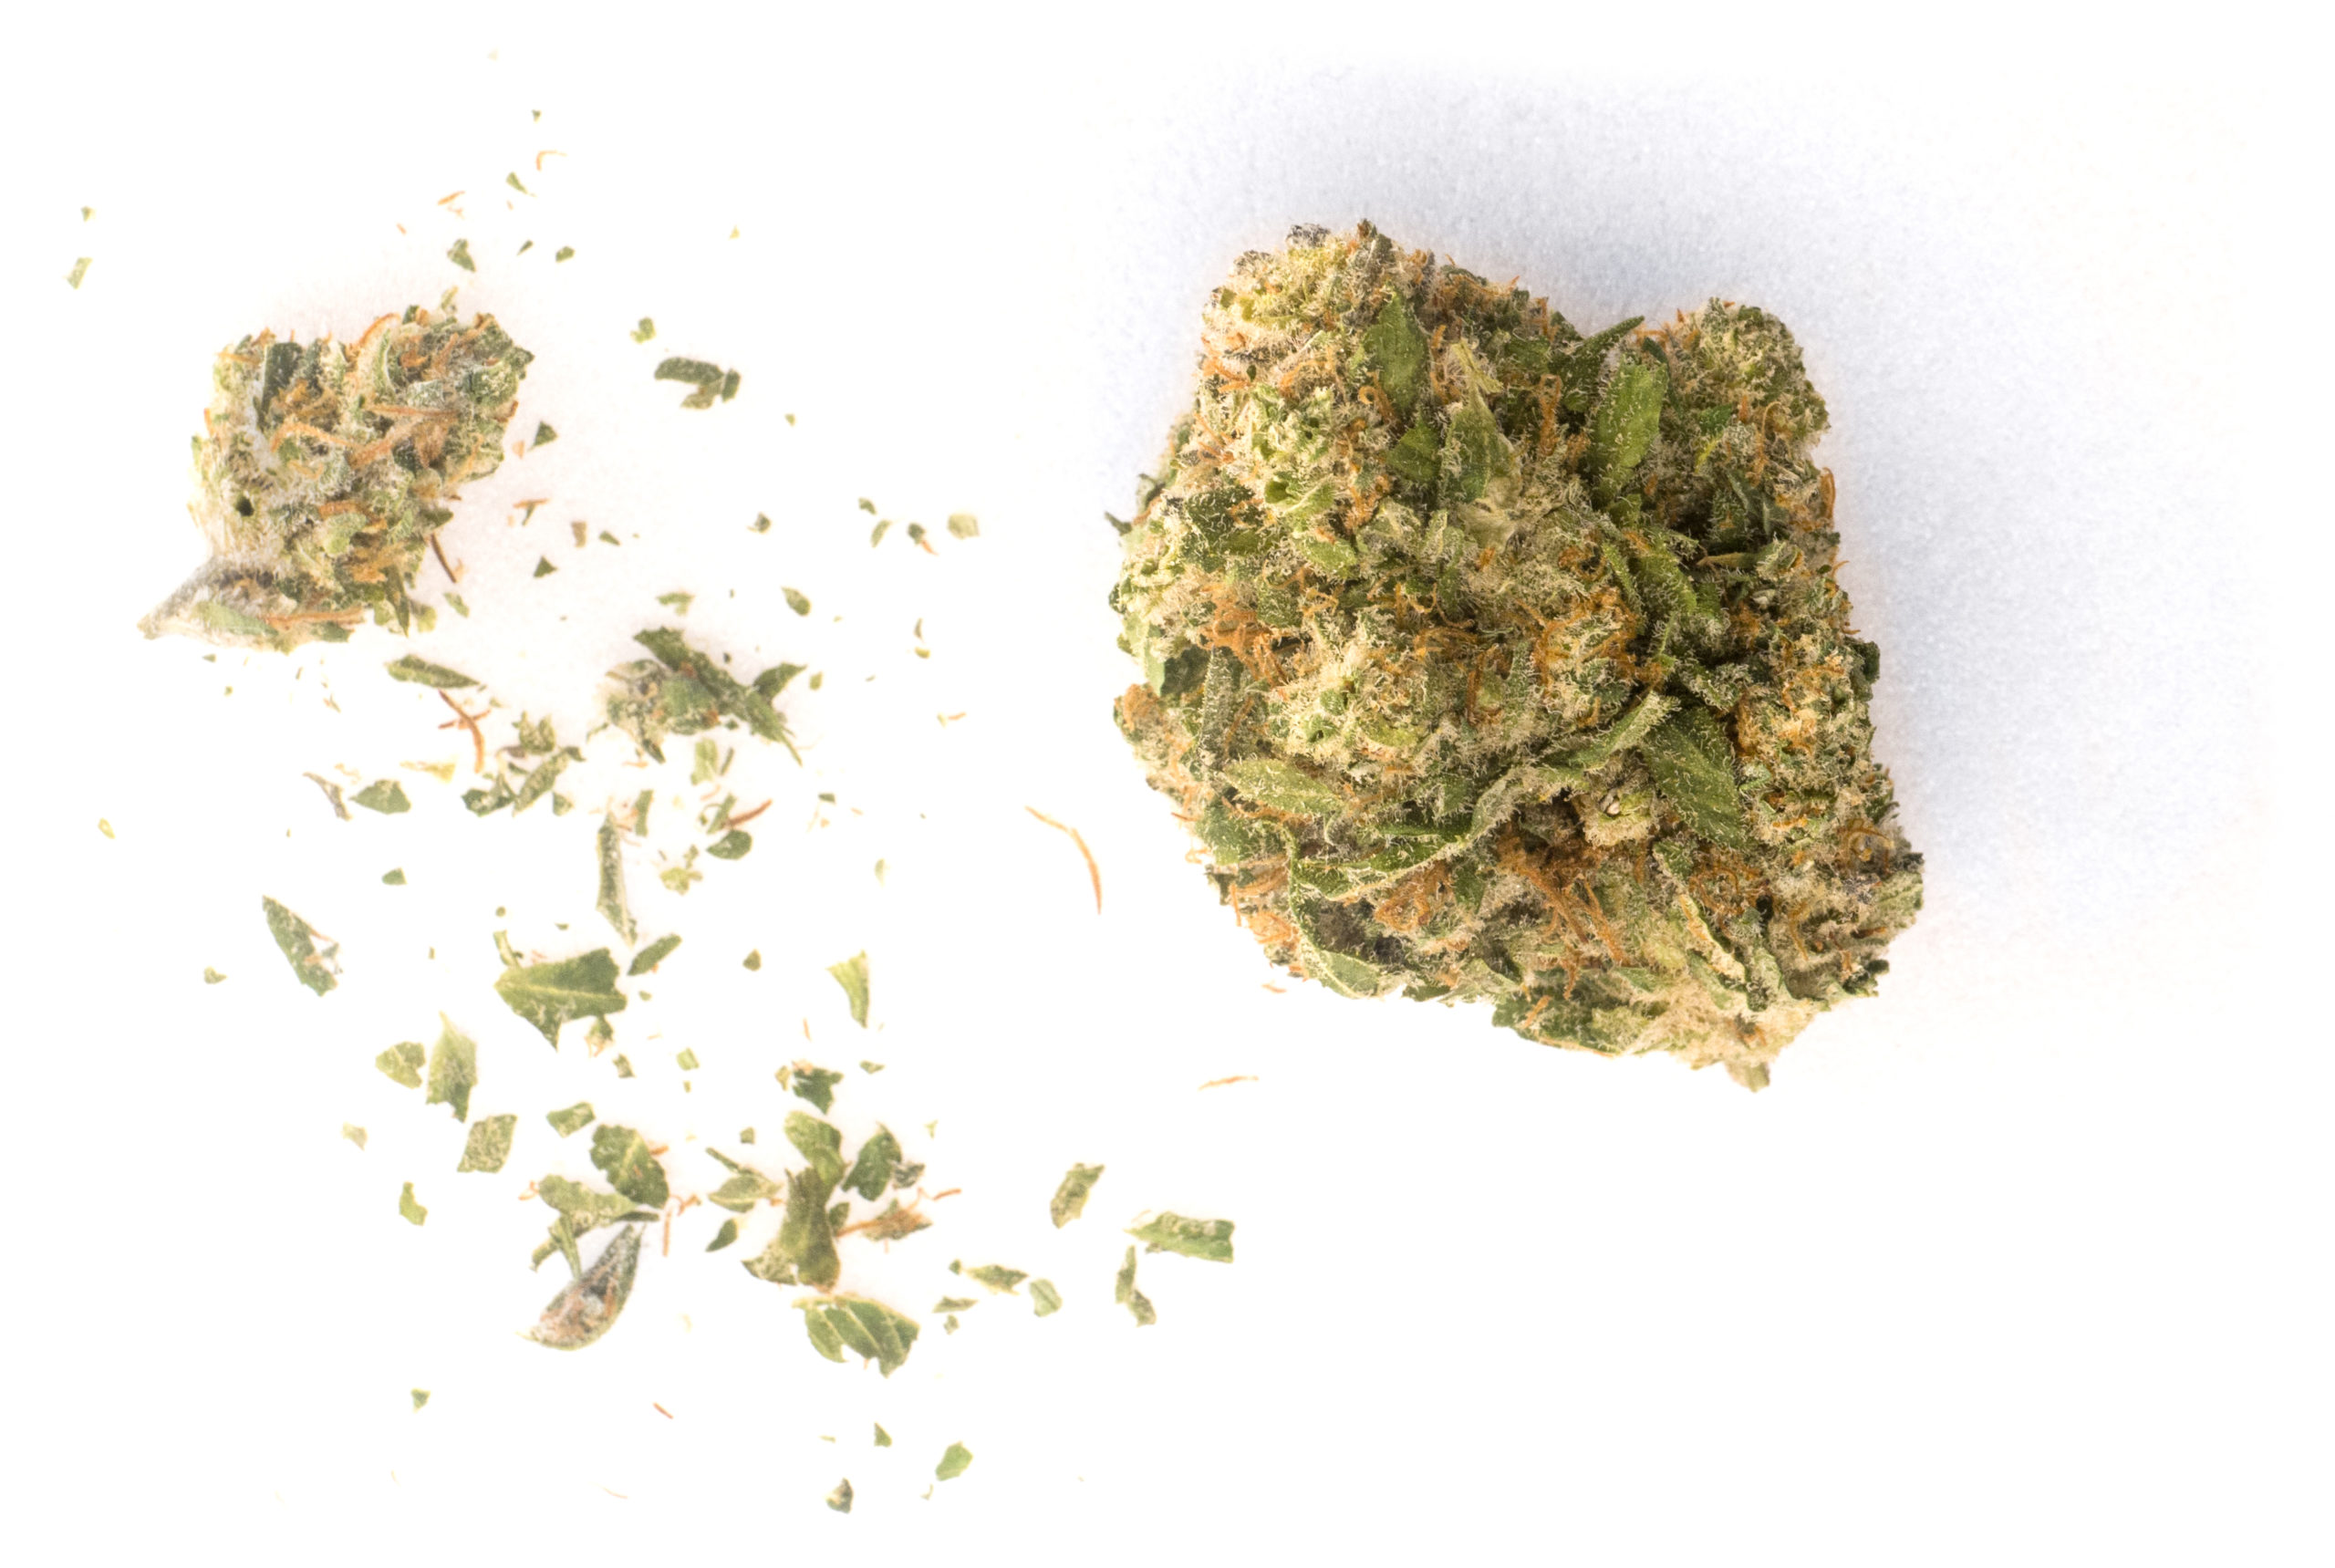 Star CBD unboxed, showing one well trimmed large bud, a very small bud, and a bit of shake.